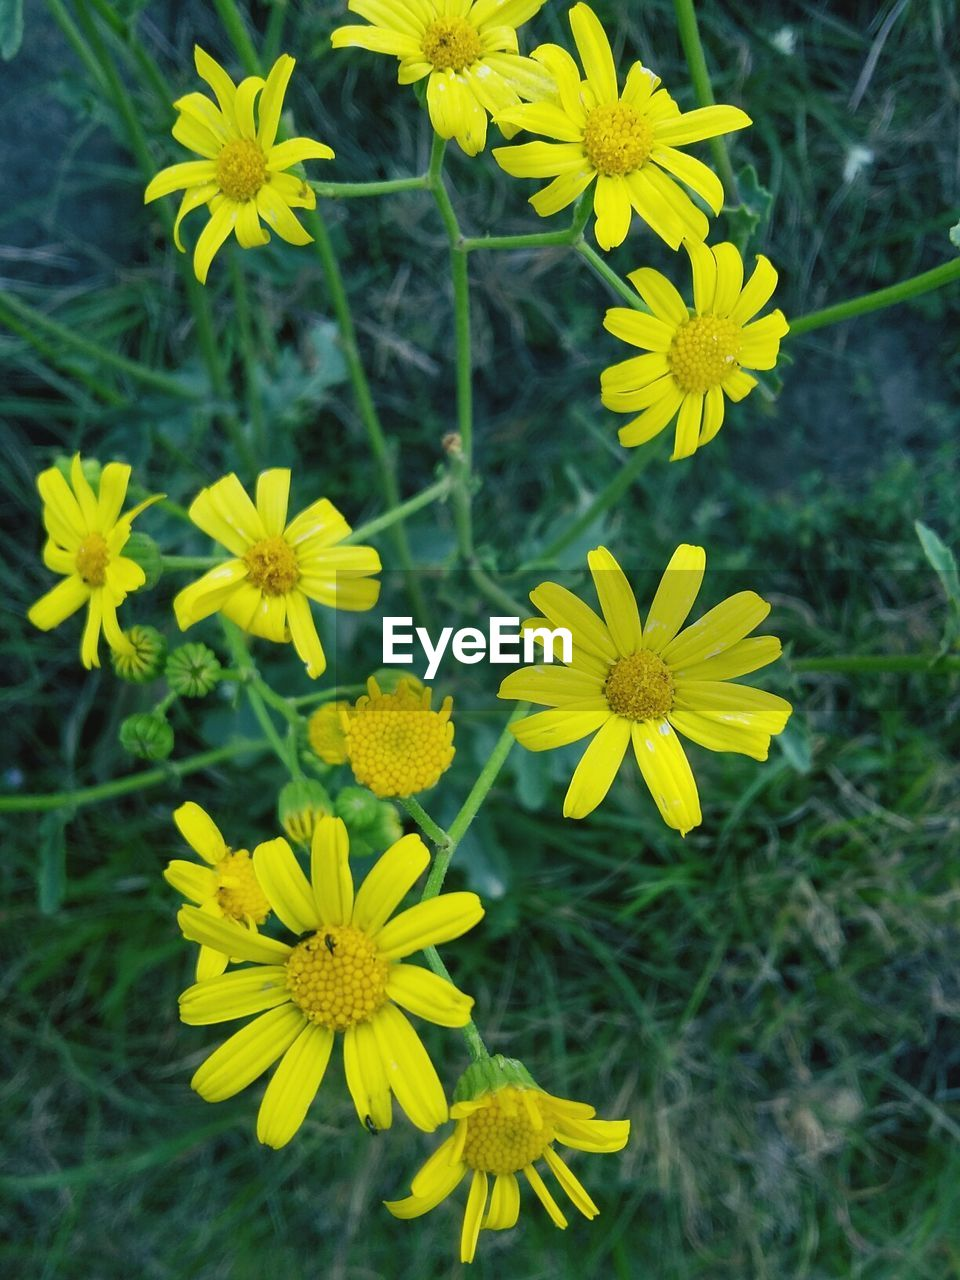 flower, yellow, growth, nature, beauty in nature, fragility, plant, petal, freshness, flower head, field, blooming, outdoors, no people, day, close-up